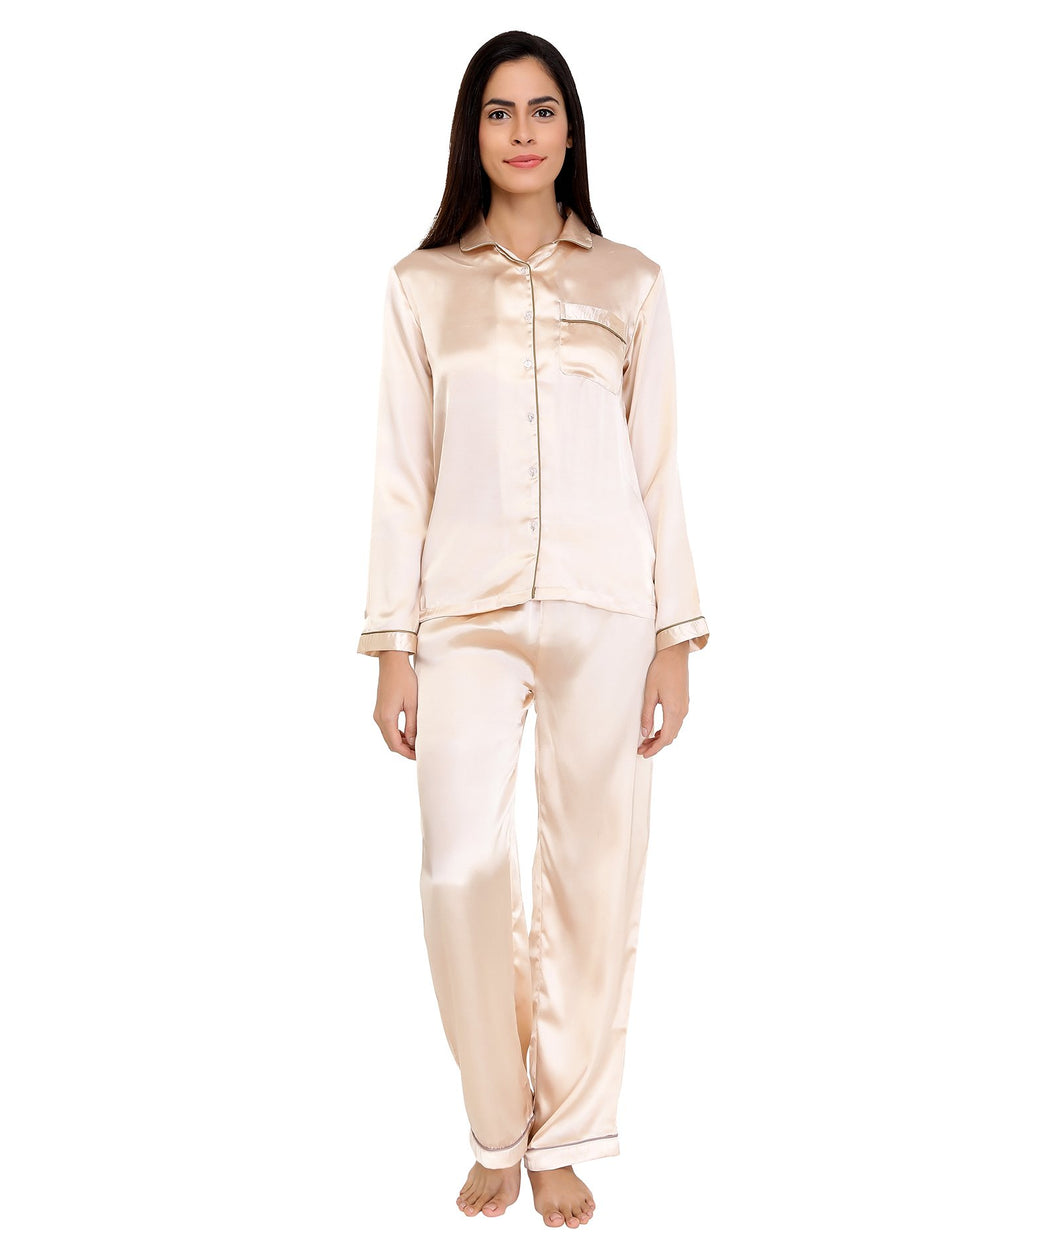 Champagne Satin Nightsuit Set